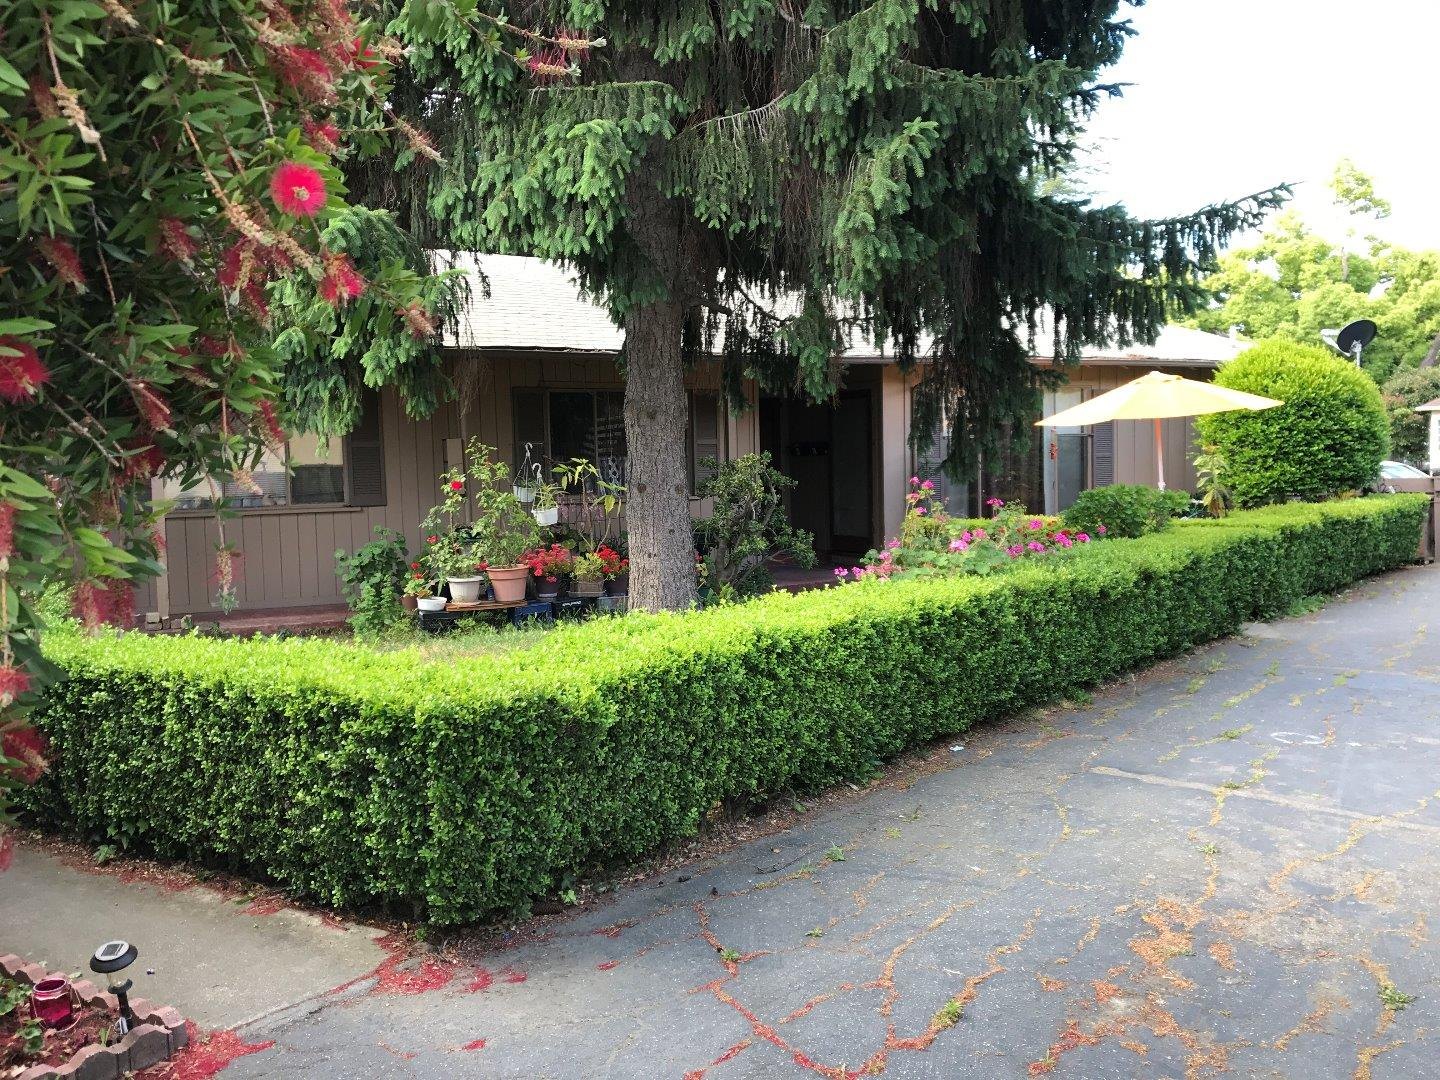 Additional photo for property listing at 864 Park Drive  Mountain View, カリフォルニア 94040 アメリカ合衆国